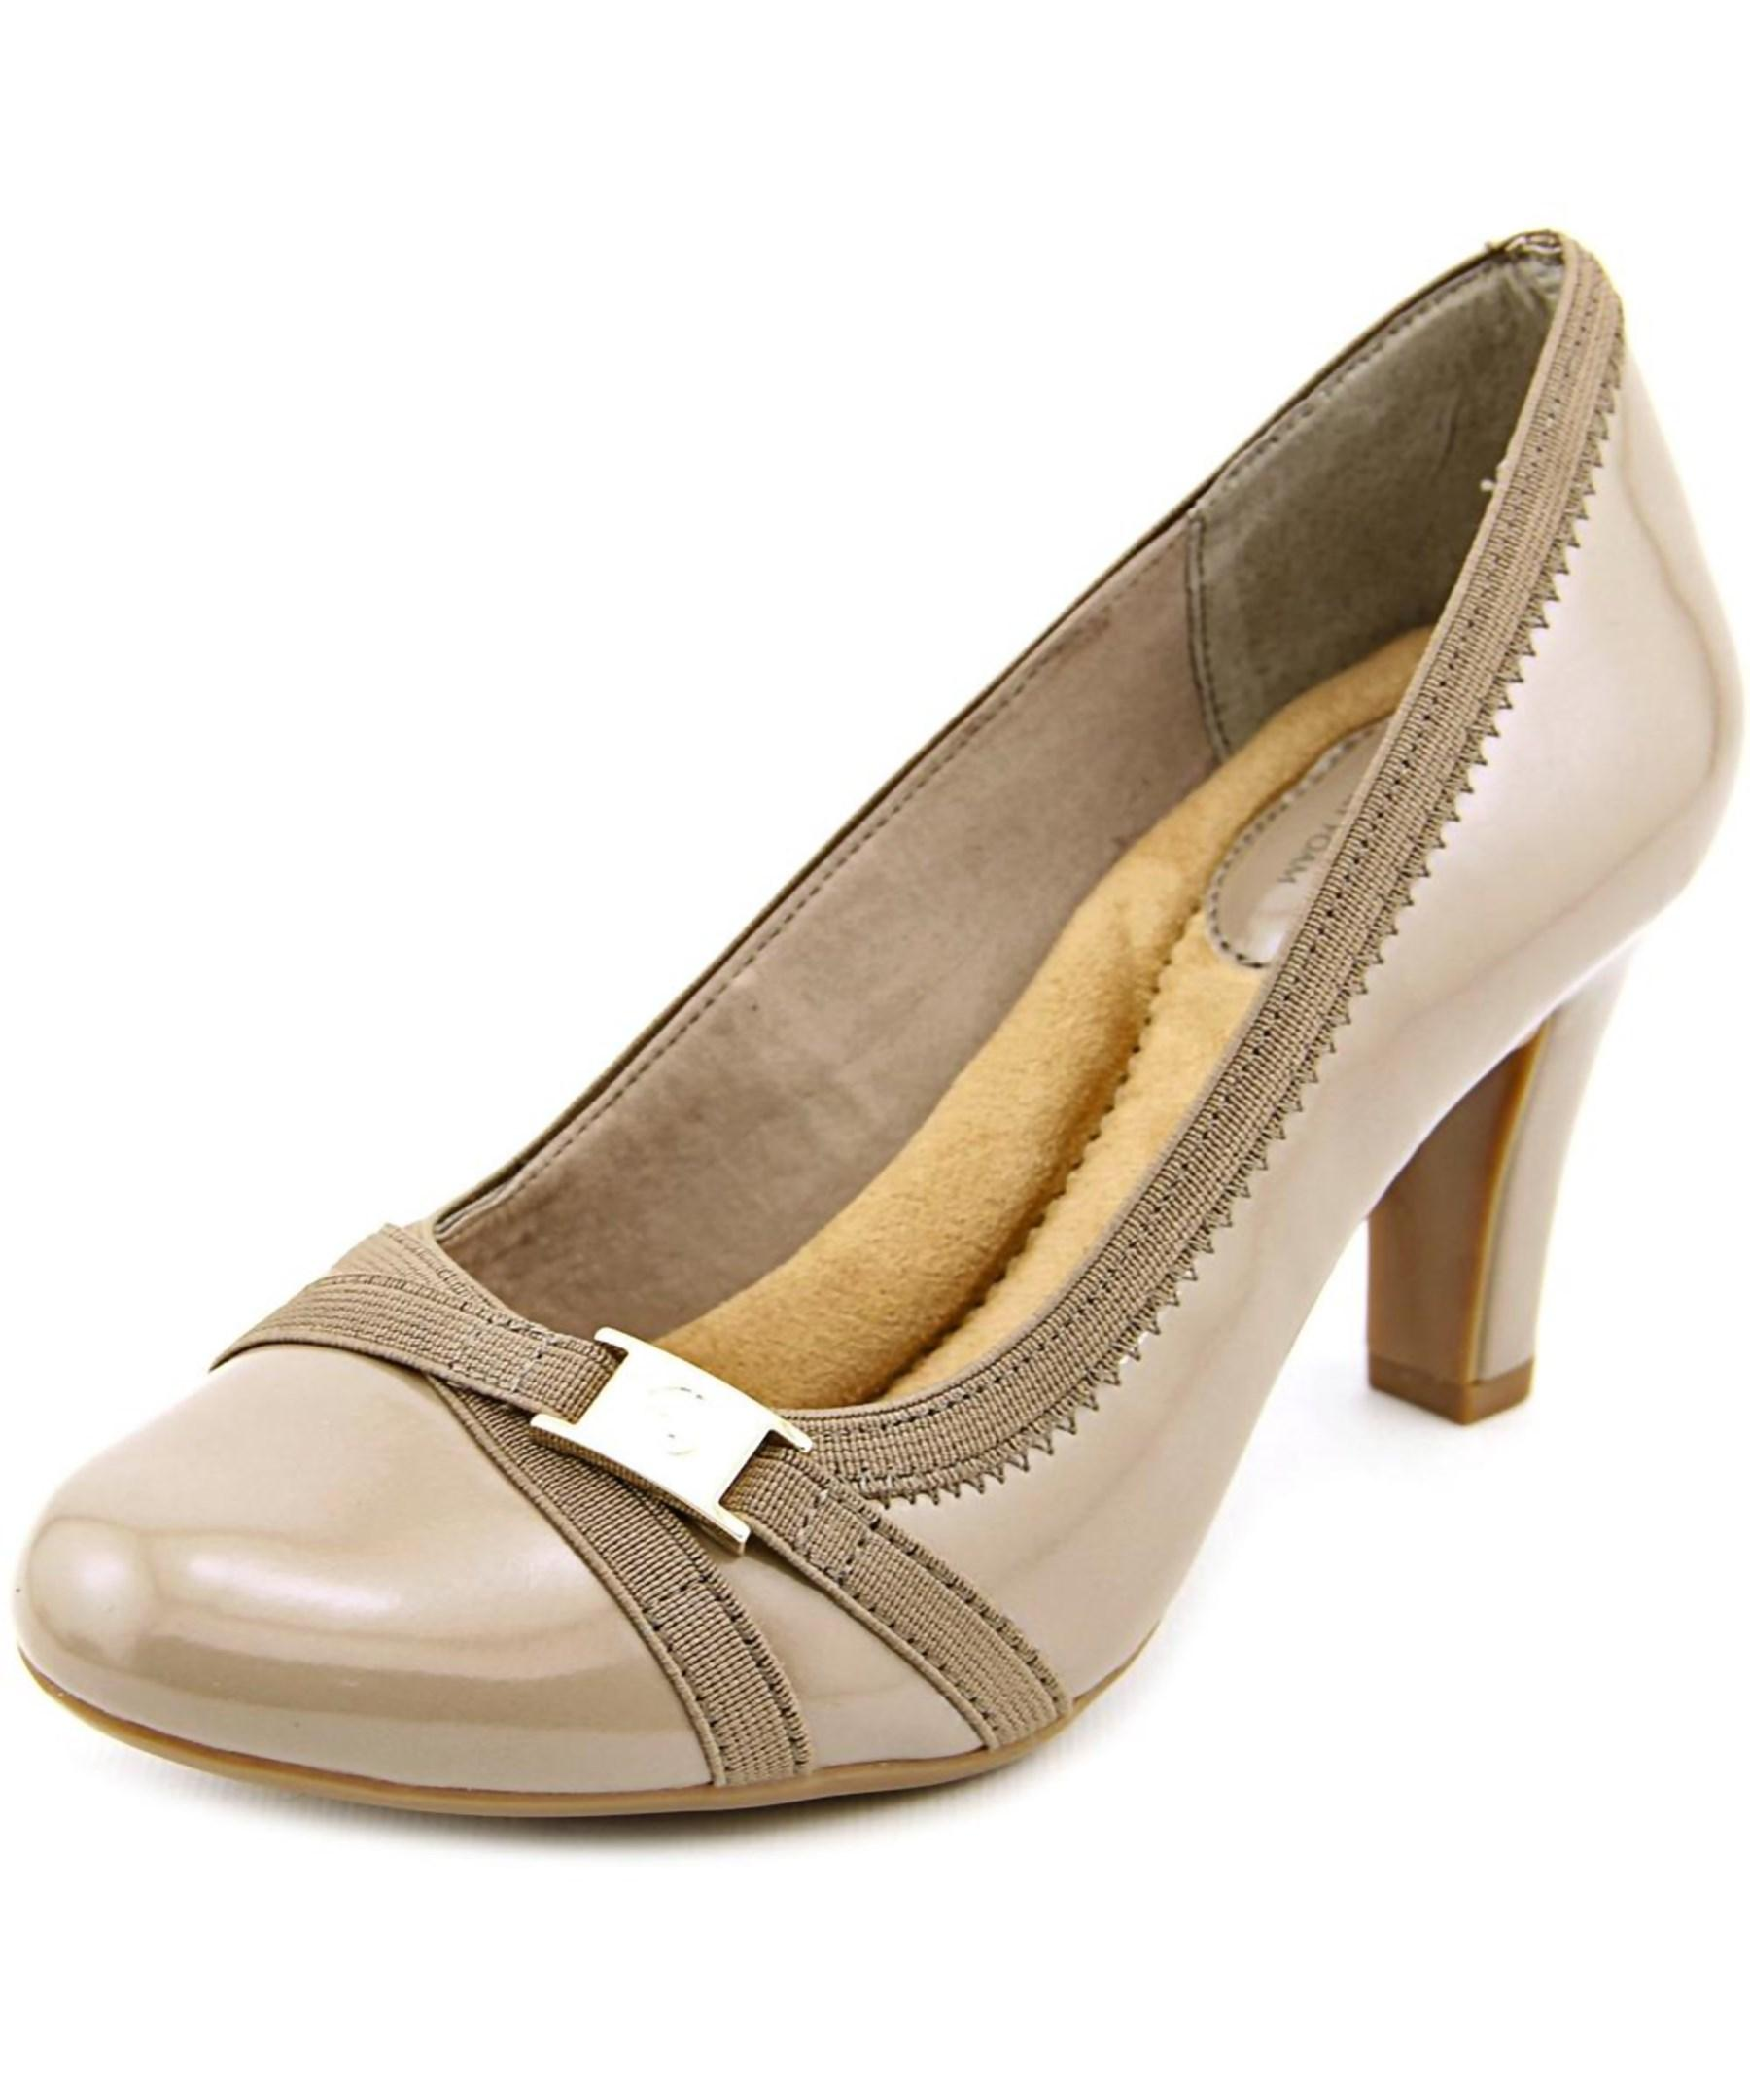 Round Toe Character Shoes